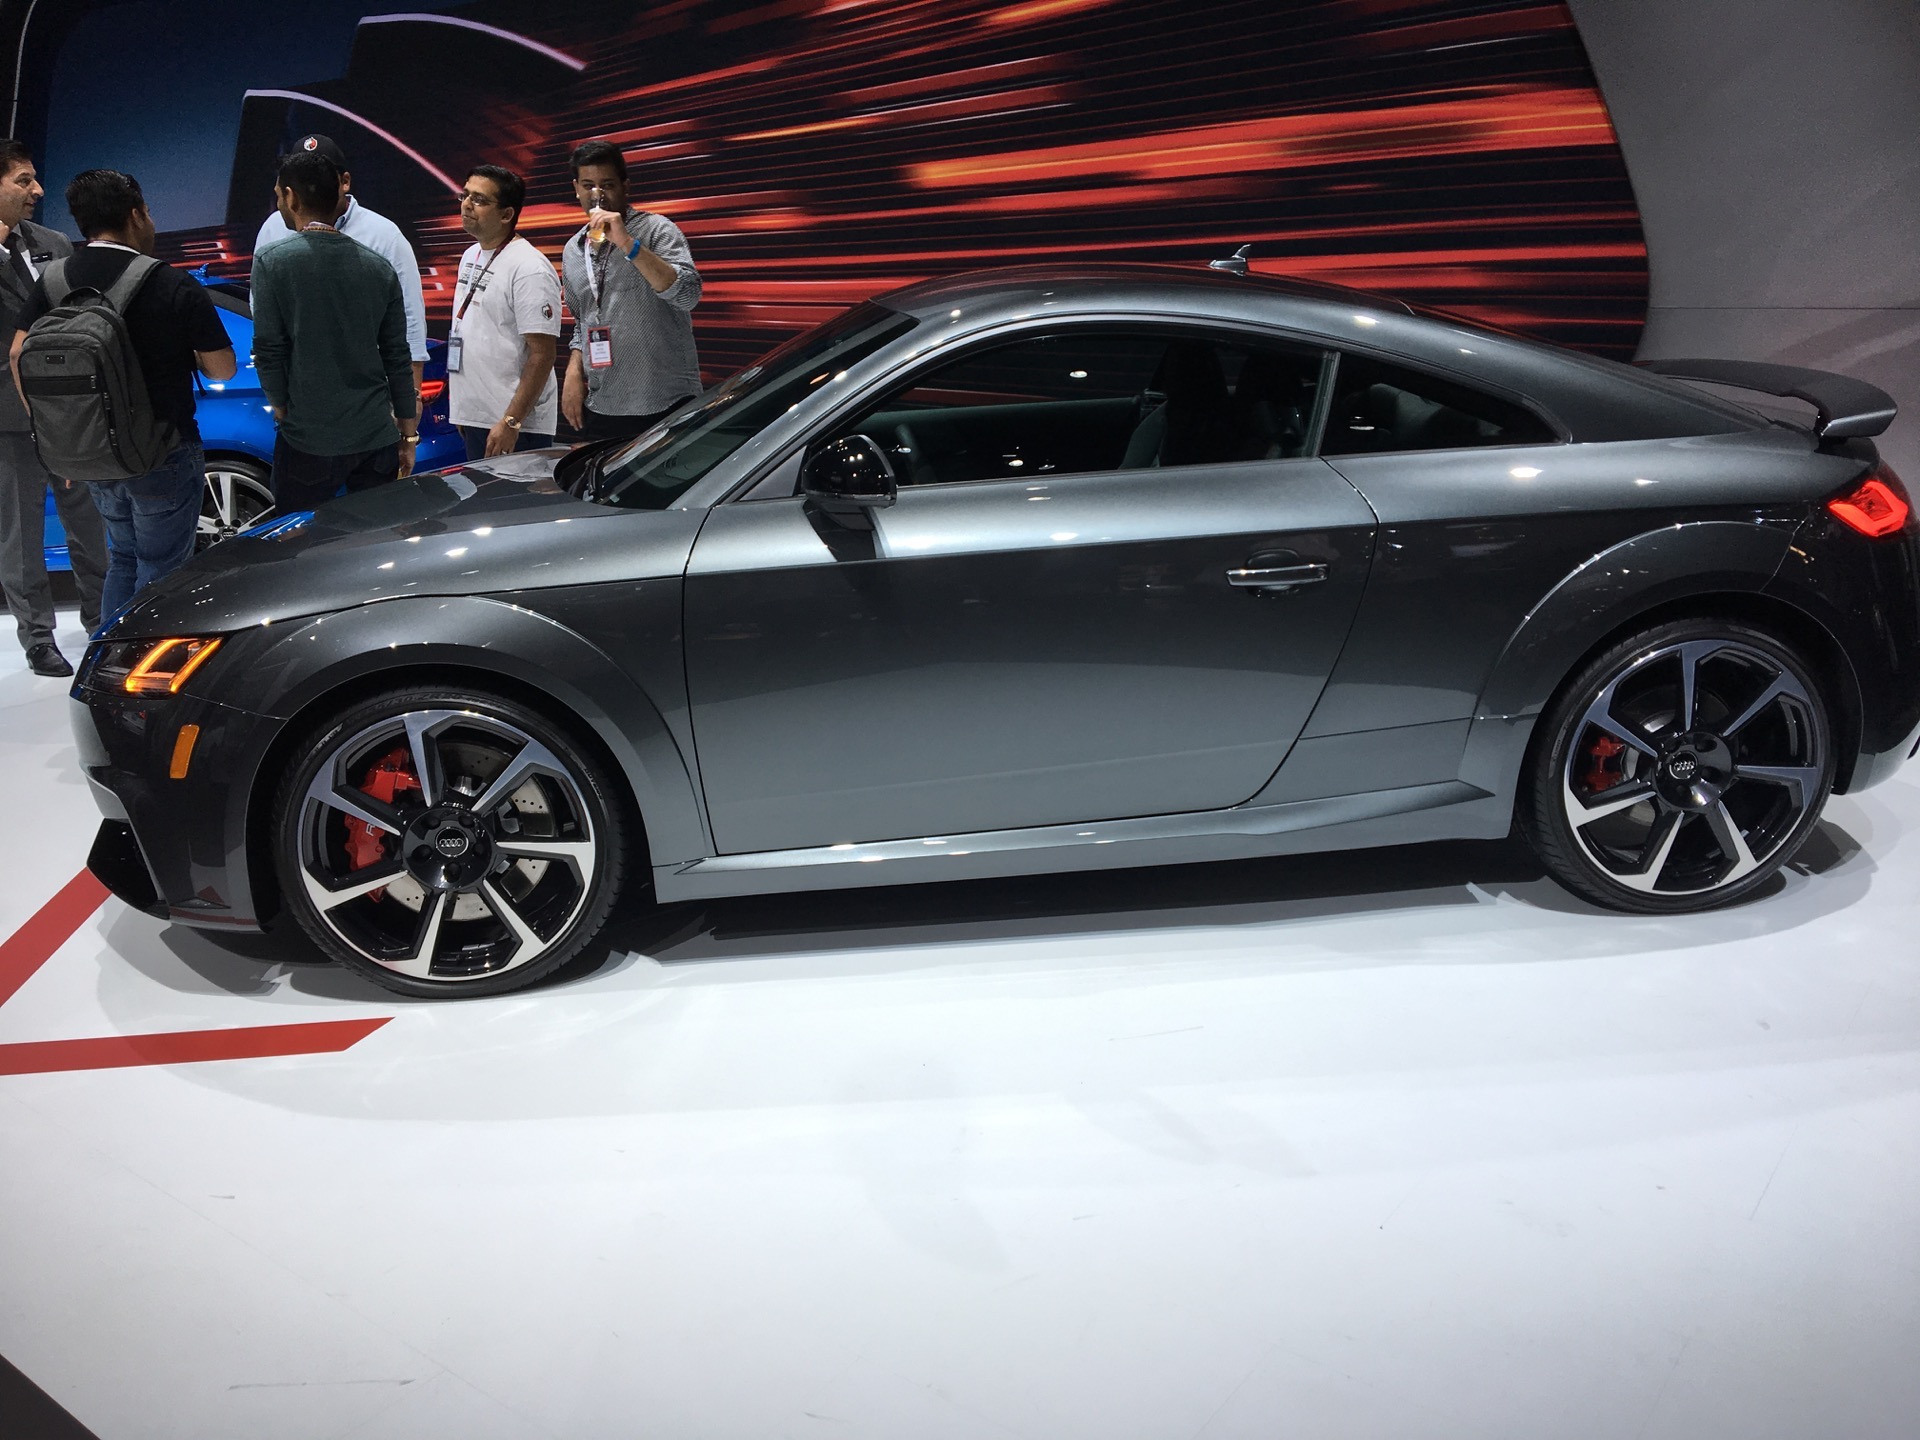 2017 New York Auto Show: 2018 Audi TT RS makes American debut